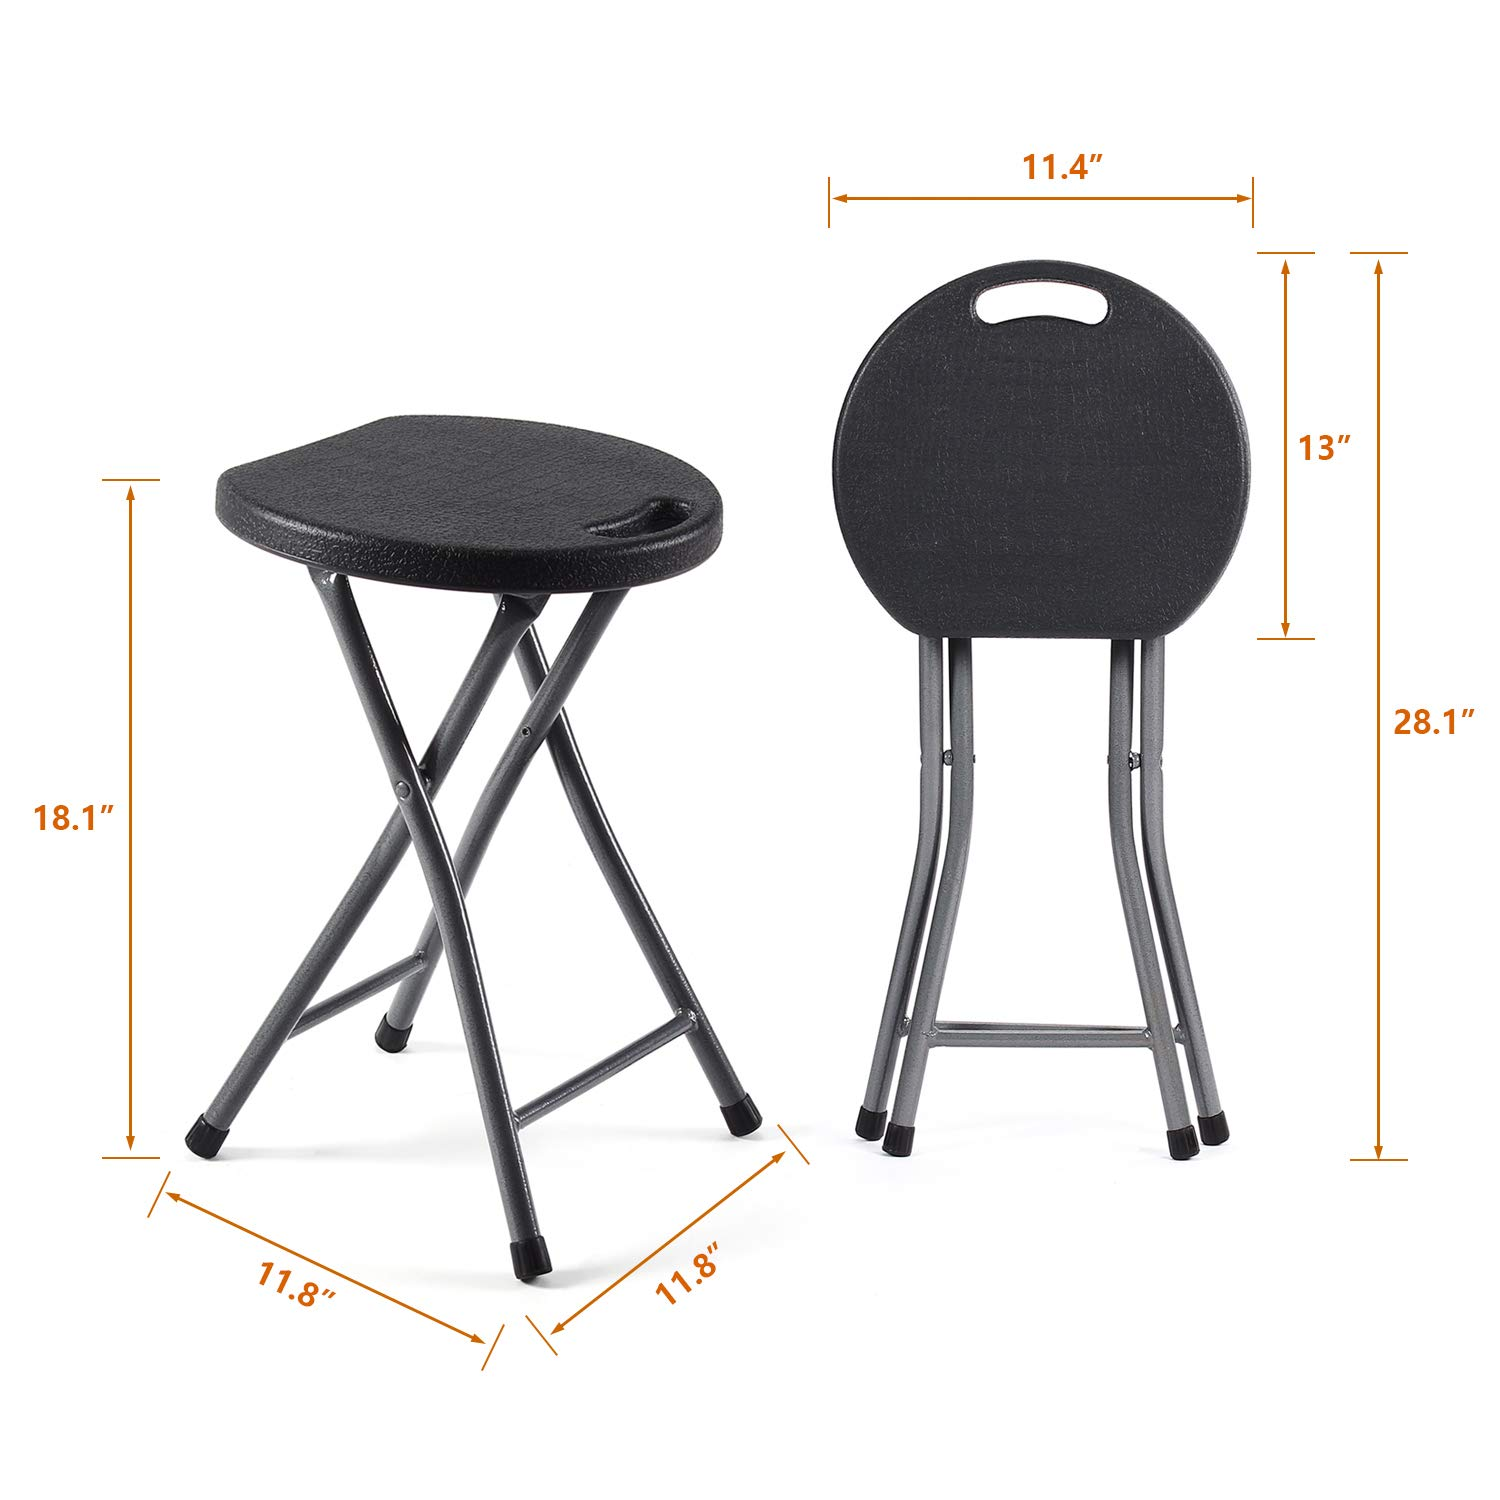 Miraculous Details About Tavr Folding Stool Set Of Two 18 1 Inch Height Light Weight Metal And Plastic Ibusinesslaw Wood Chair Design Ideas Ibusinesslaworg